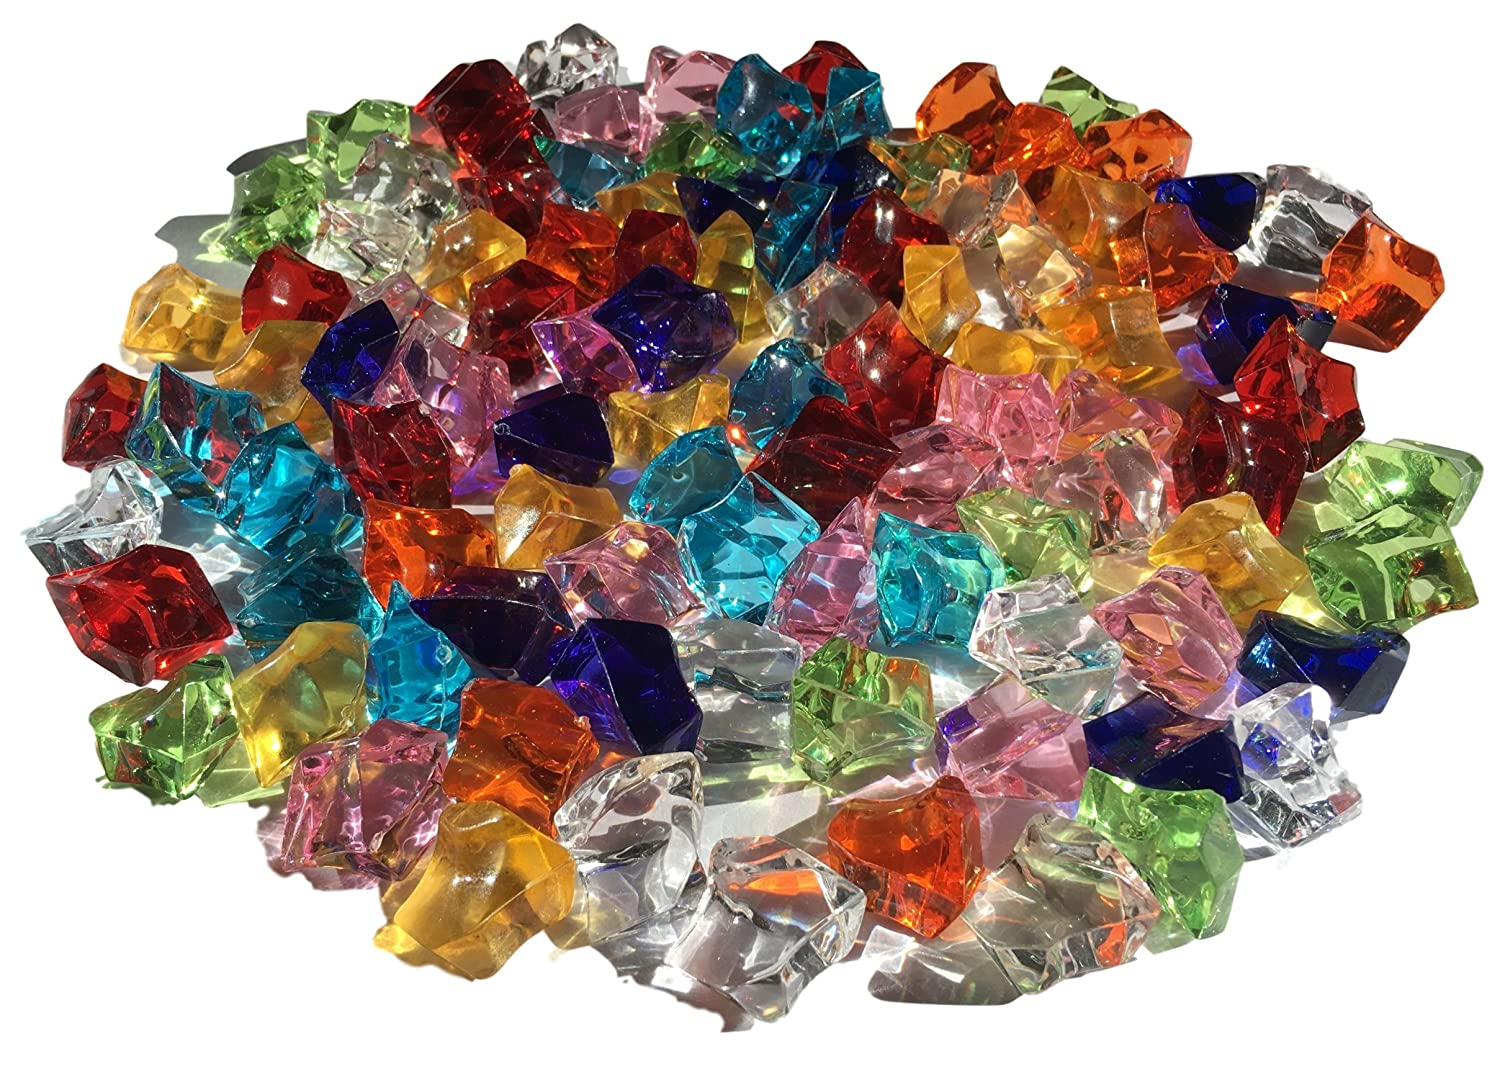 100 pieza 15 mm reluciente Multicolor Decoración Hielo Diamantes Brillantes brillantes acrílico Piedras Manualidades piedras decorativas gltzer brillantes cristales decorativos para decorar de Crystal King